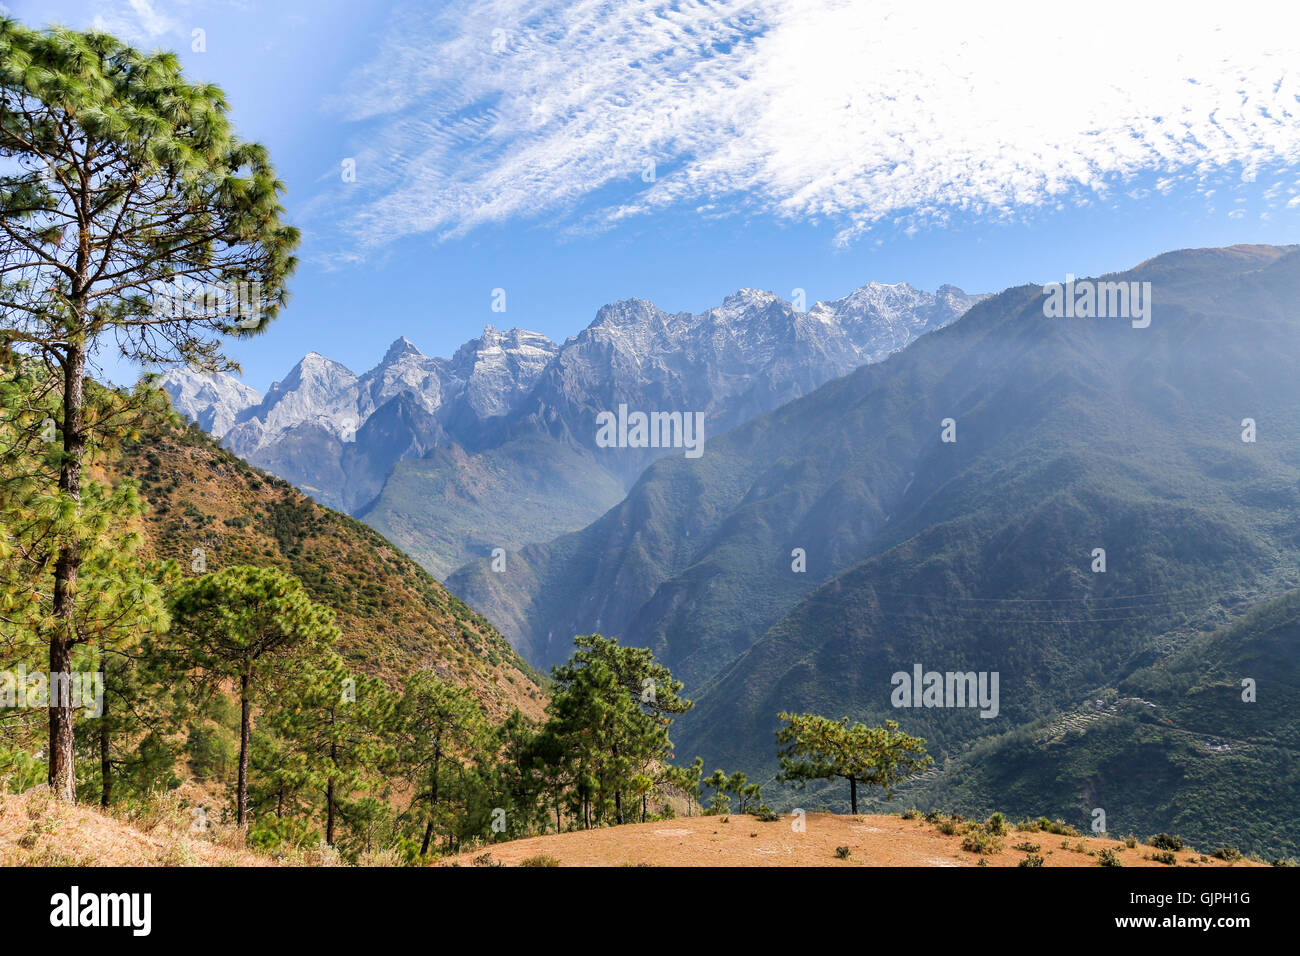 The Jade Dragon Snow Mountains, Tiger Leaping Gorge, Yunnan, China. - Stock Image